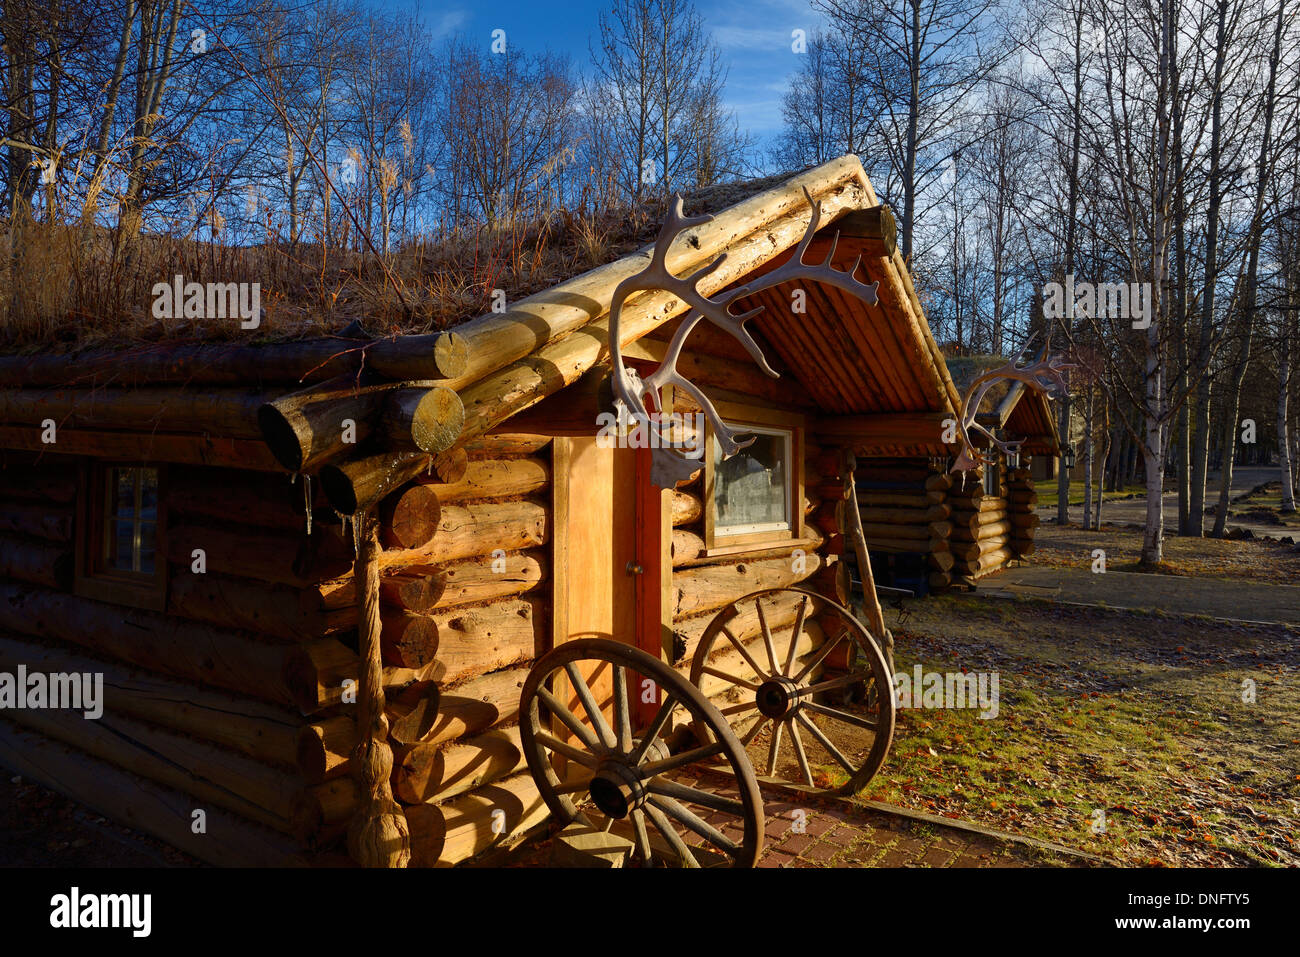 Log cabin with sod roof and caribou antlers at Chena Hot Springs Resort Alaska USA - Stock Image